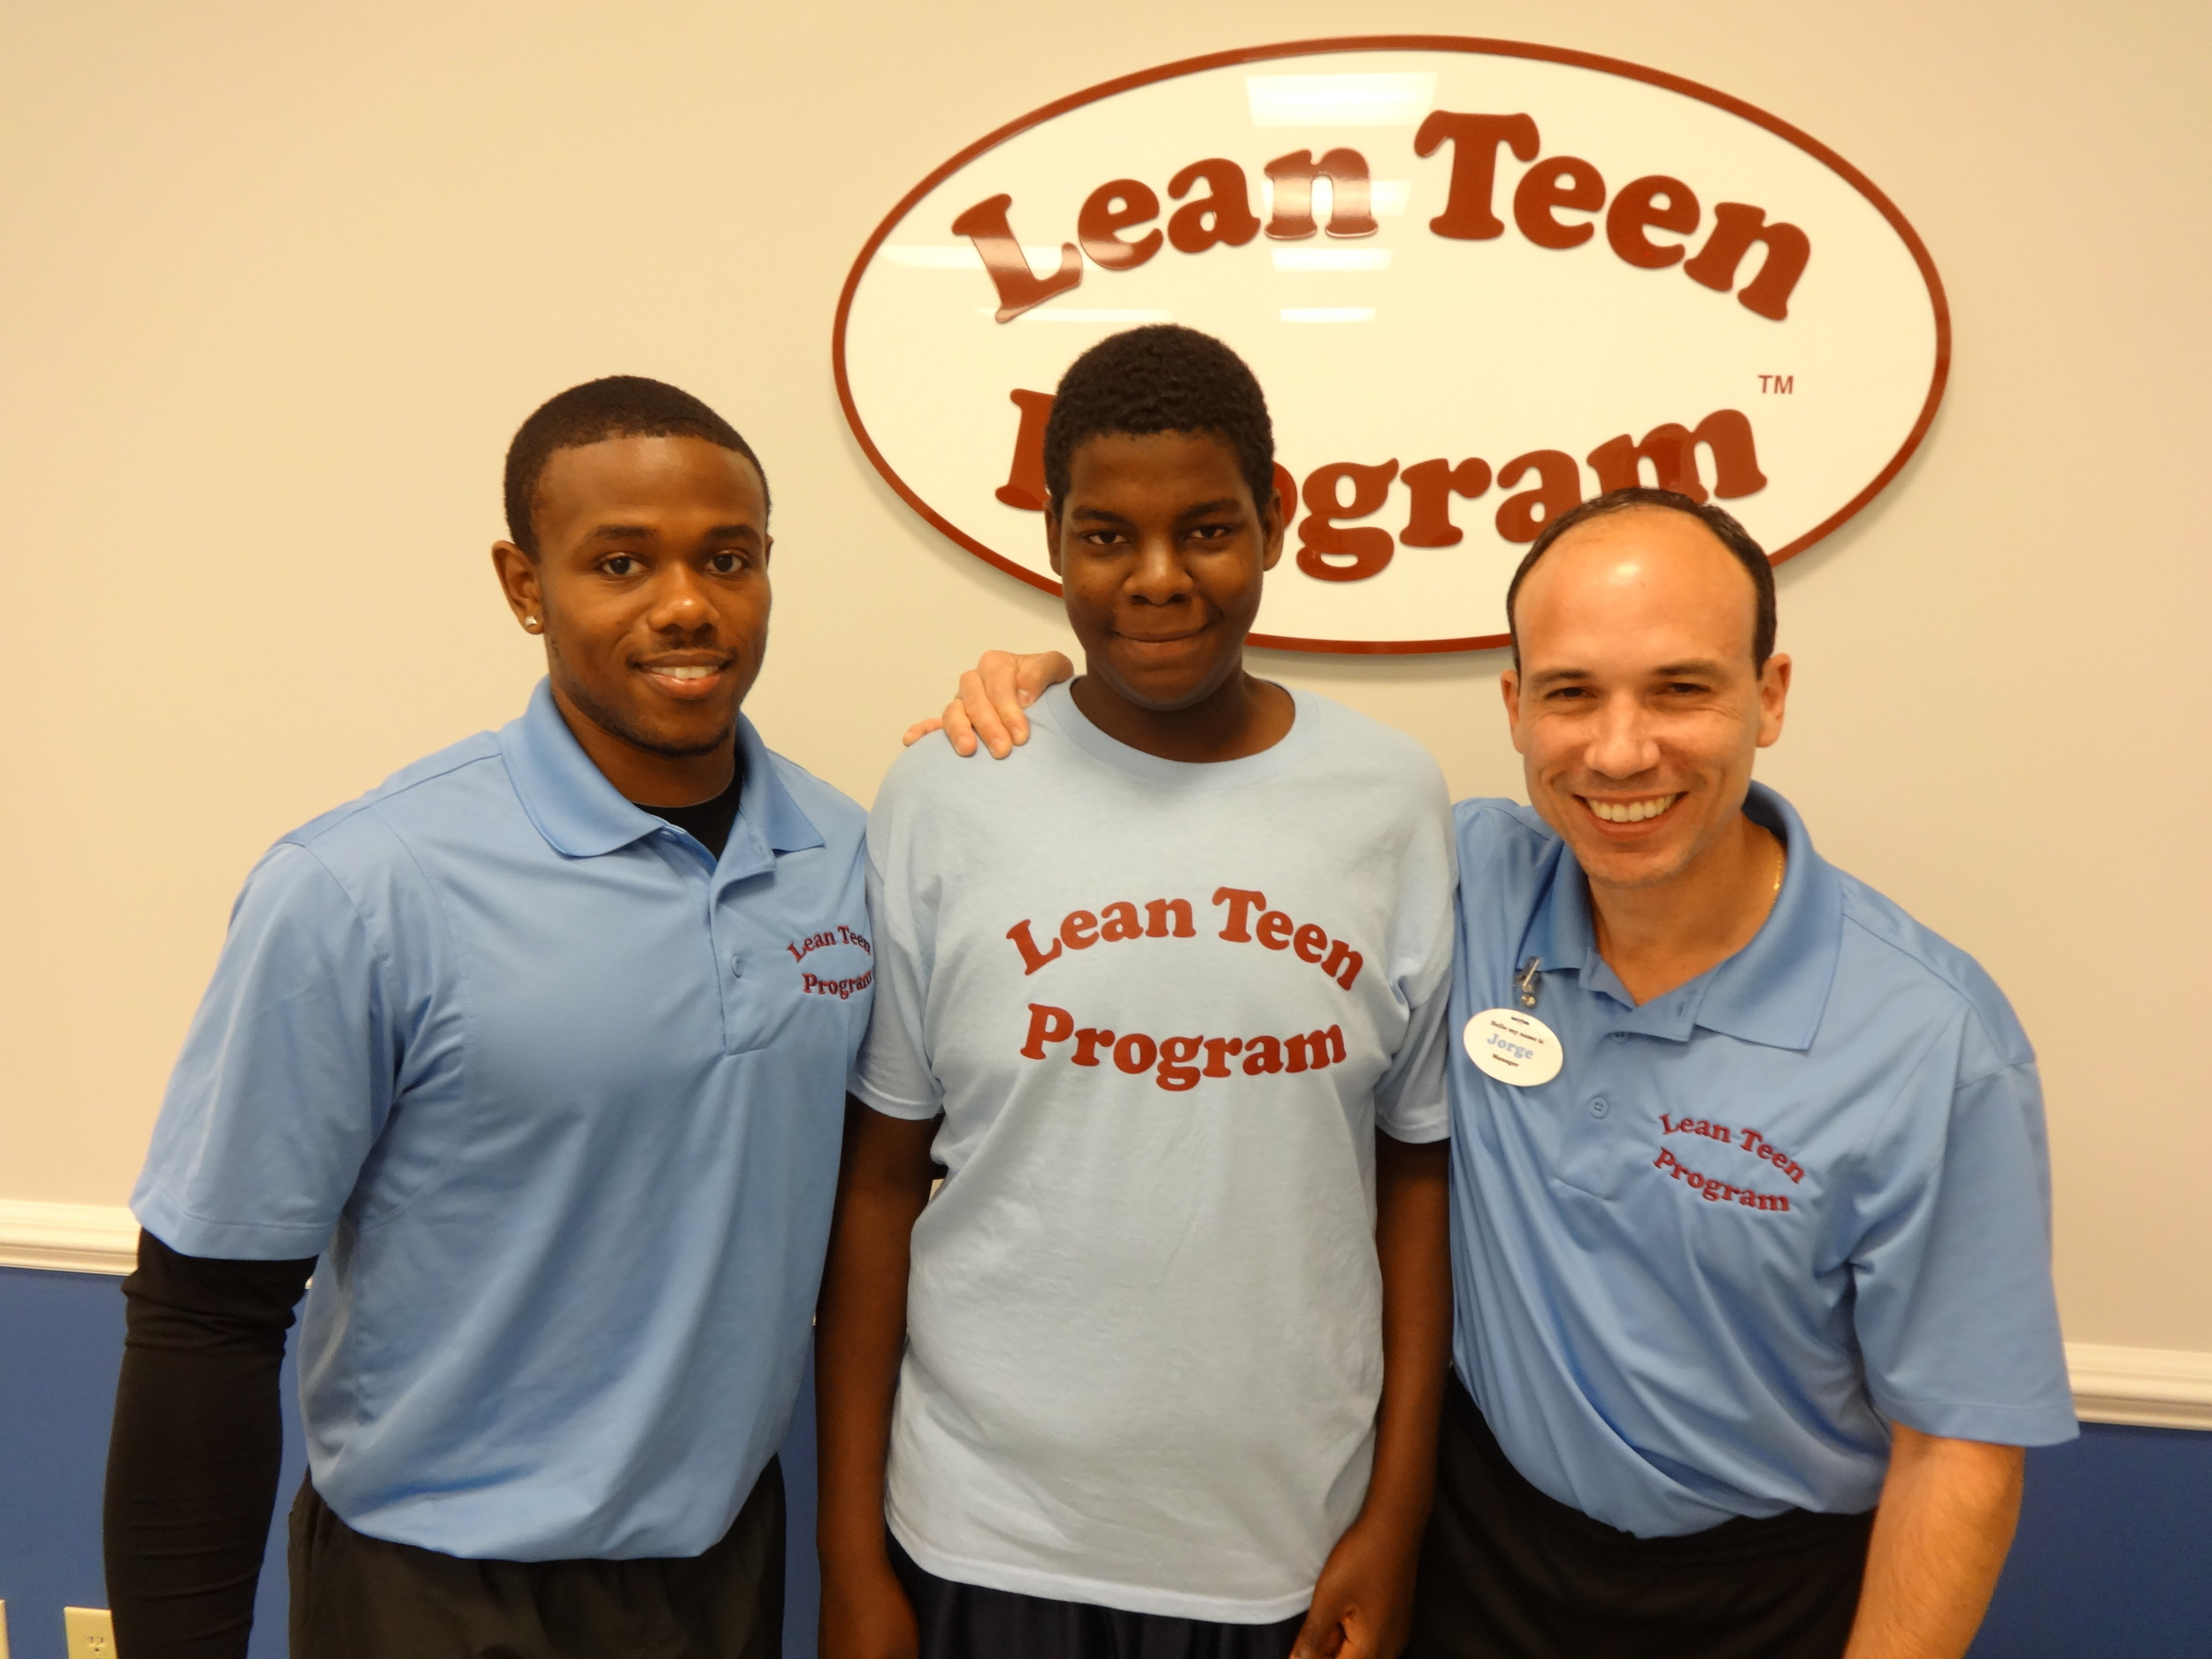 Jorge featured on right with lead trainer Justin and Lean Teen Marquis (14 y/o)